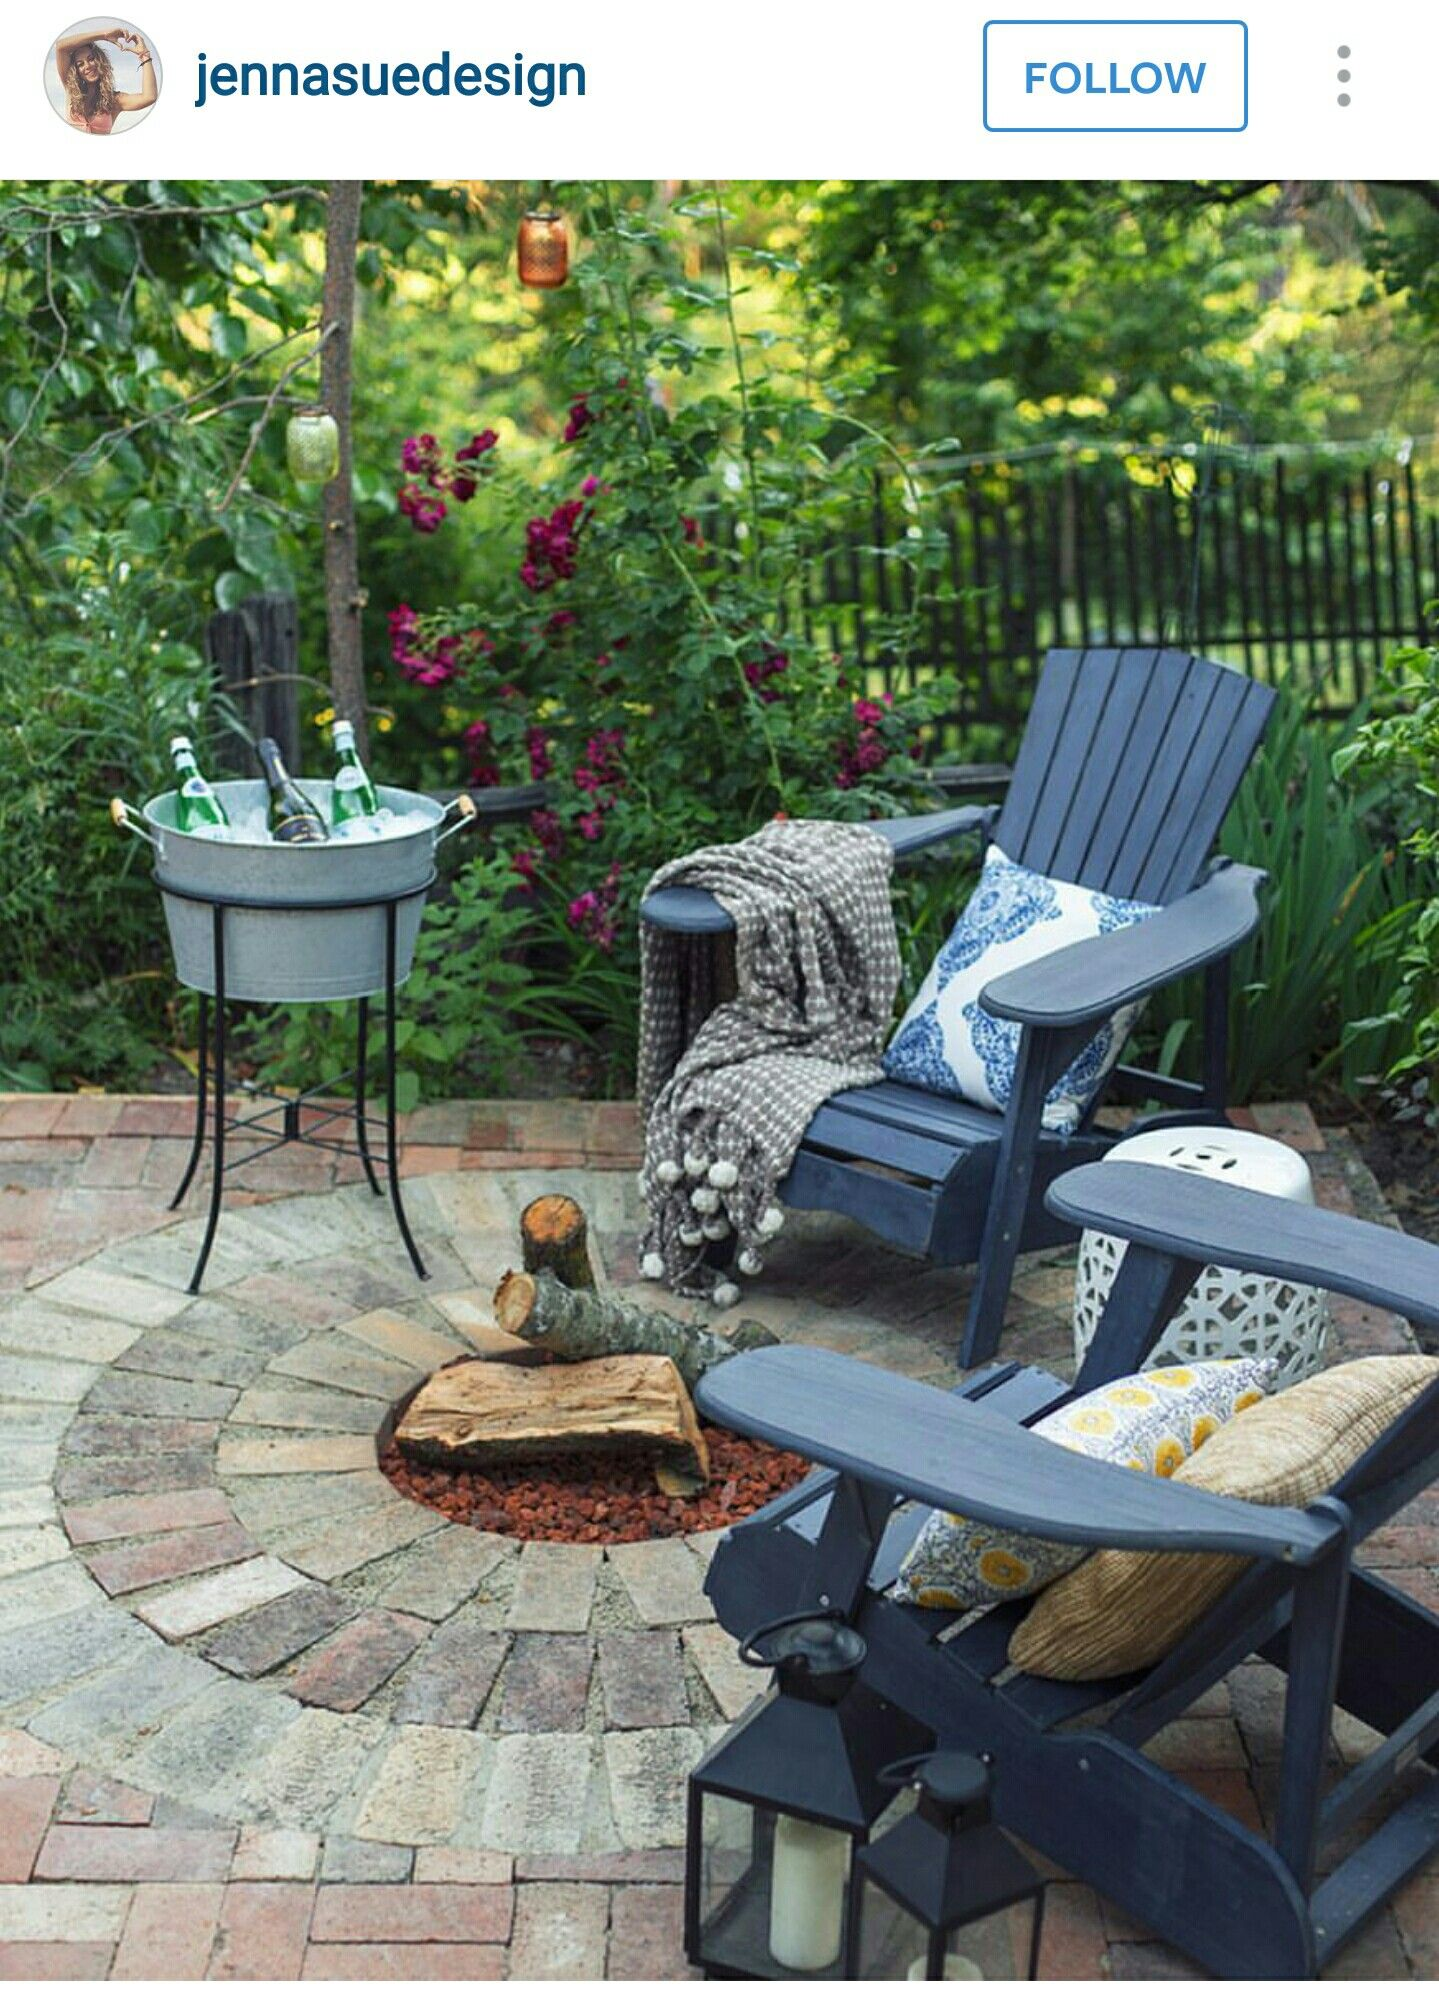 Fire Pit And Adirondack Chairs Steelcase Leap Chair V1 Vs V2 Yes With My Blue An Umbrella Can